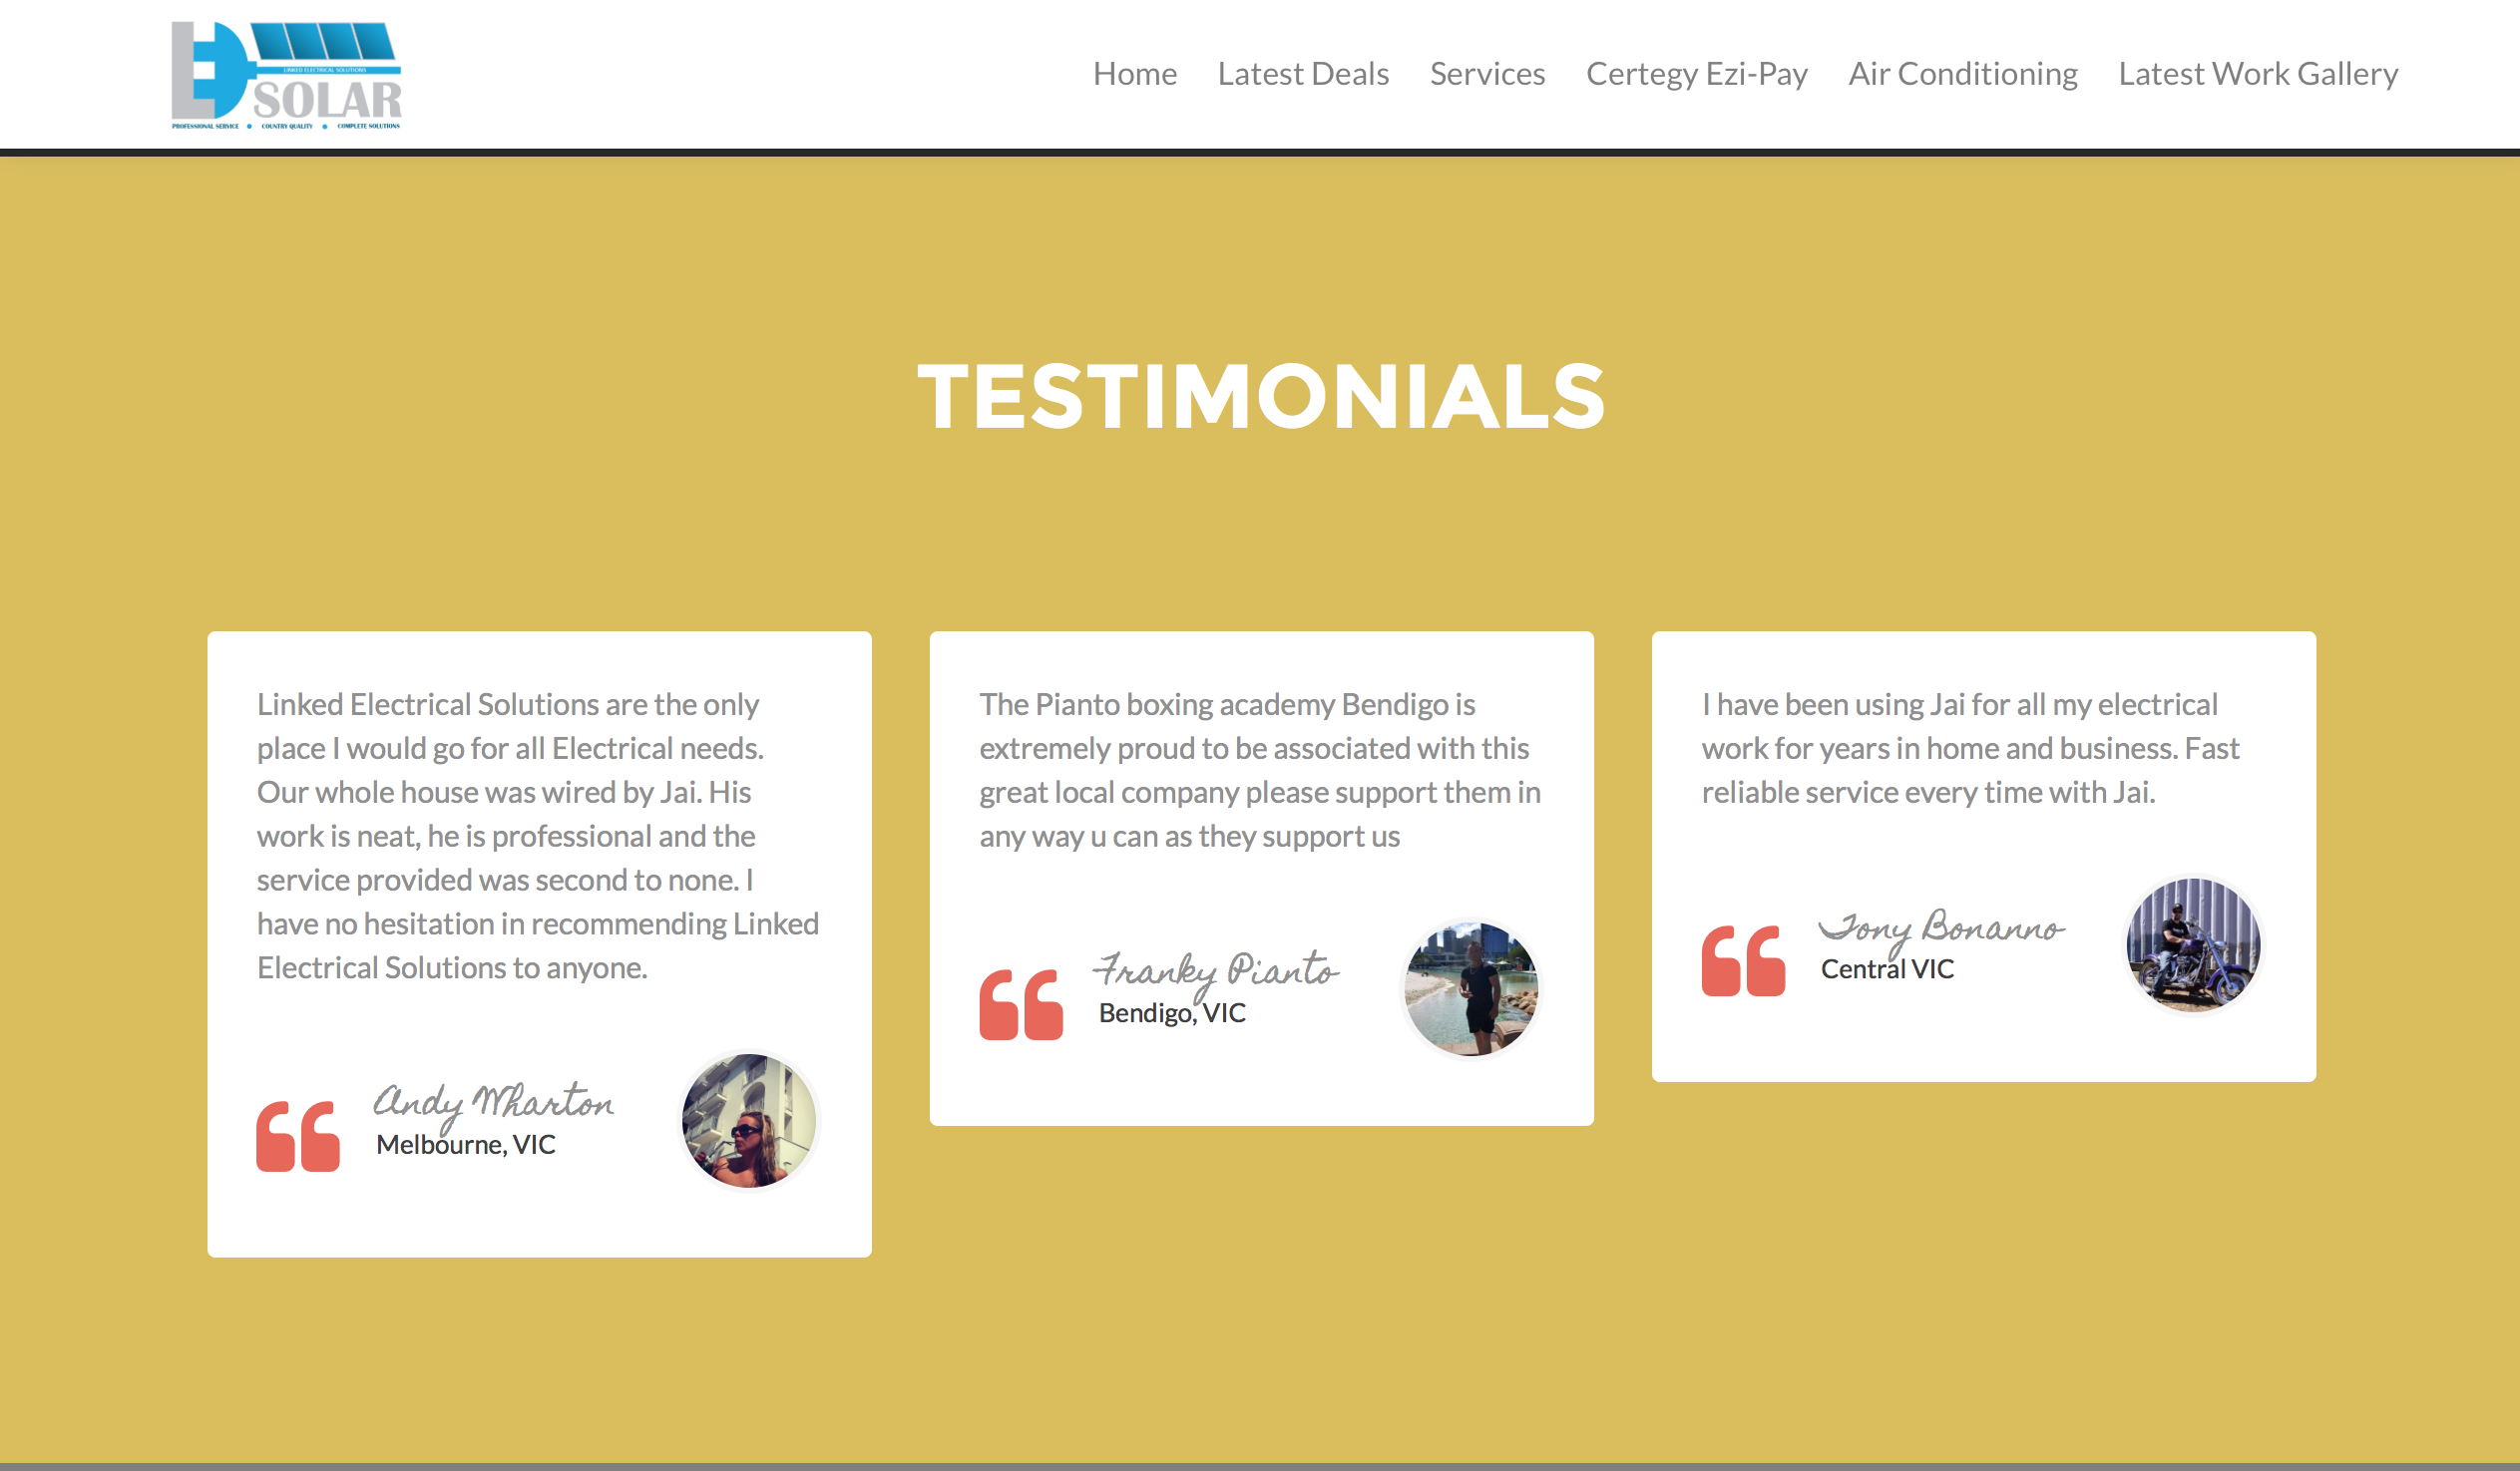 linked-electrical-get-online-recent-projects-testimonials